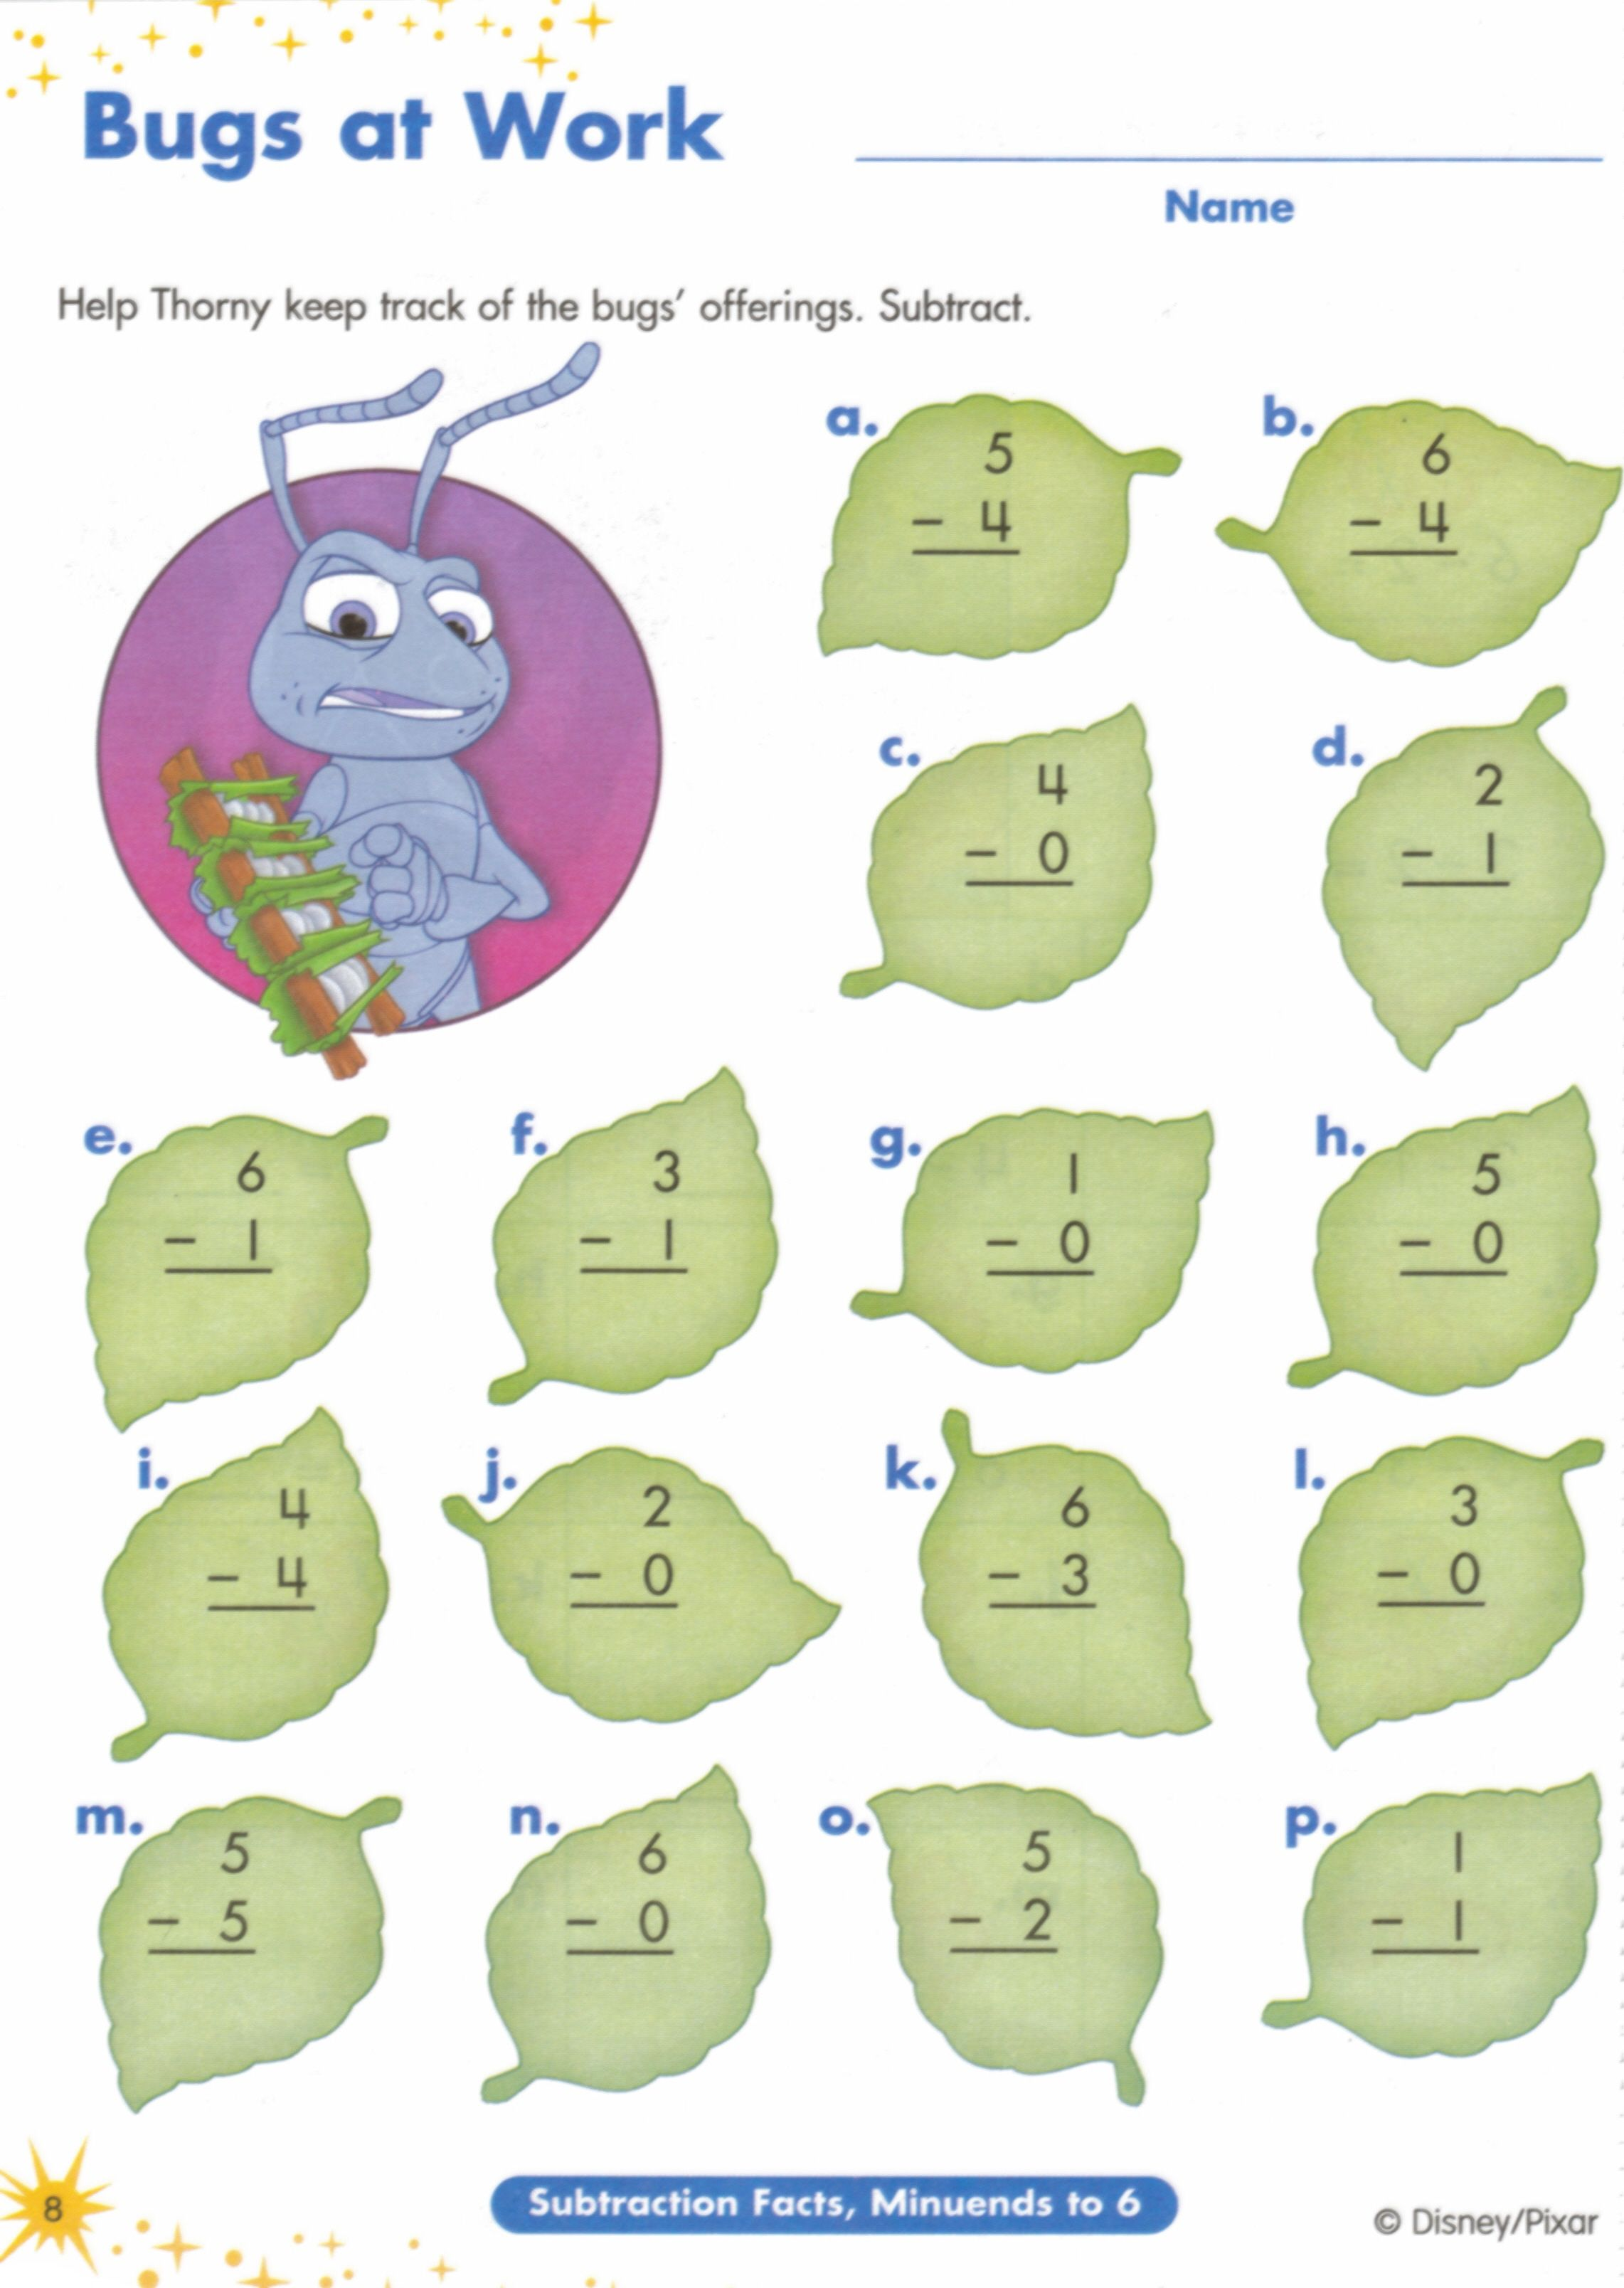 Proatmealus  Outstanding  Images About Worksheets On Pinterest  Fun Facts For Kids  With Inspiring  Images About Worksheets On Pinterest  Fun Facts For Kids Earth Day Worksheets And Jungles With Astounding Japanese Hiragana Worksheets Also Mixed Number Multiplication Worksheet In Addition Tenses Worksheets And Addition Practice Worksheet As Well As Works Cited Practice Worksheet Additionally Free Reading Comprehension Worksheets For Th Grade From Pinterestcom With Proatmealus  Inspiring  Images About Worksheets On Pinterest  Fun Facts For Kids  With Astounding  Images About Worksheets On Pinterest  Fun Facts For Kids Earth Day Worksheets And Jungles And Outstanding Japanese Hiragana Worksheets Also Mixed Number Multiplication Worksheet In Addition Tenses Worksheets From Pinterestcom